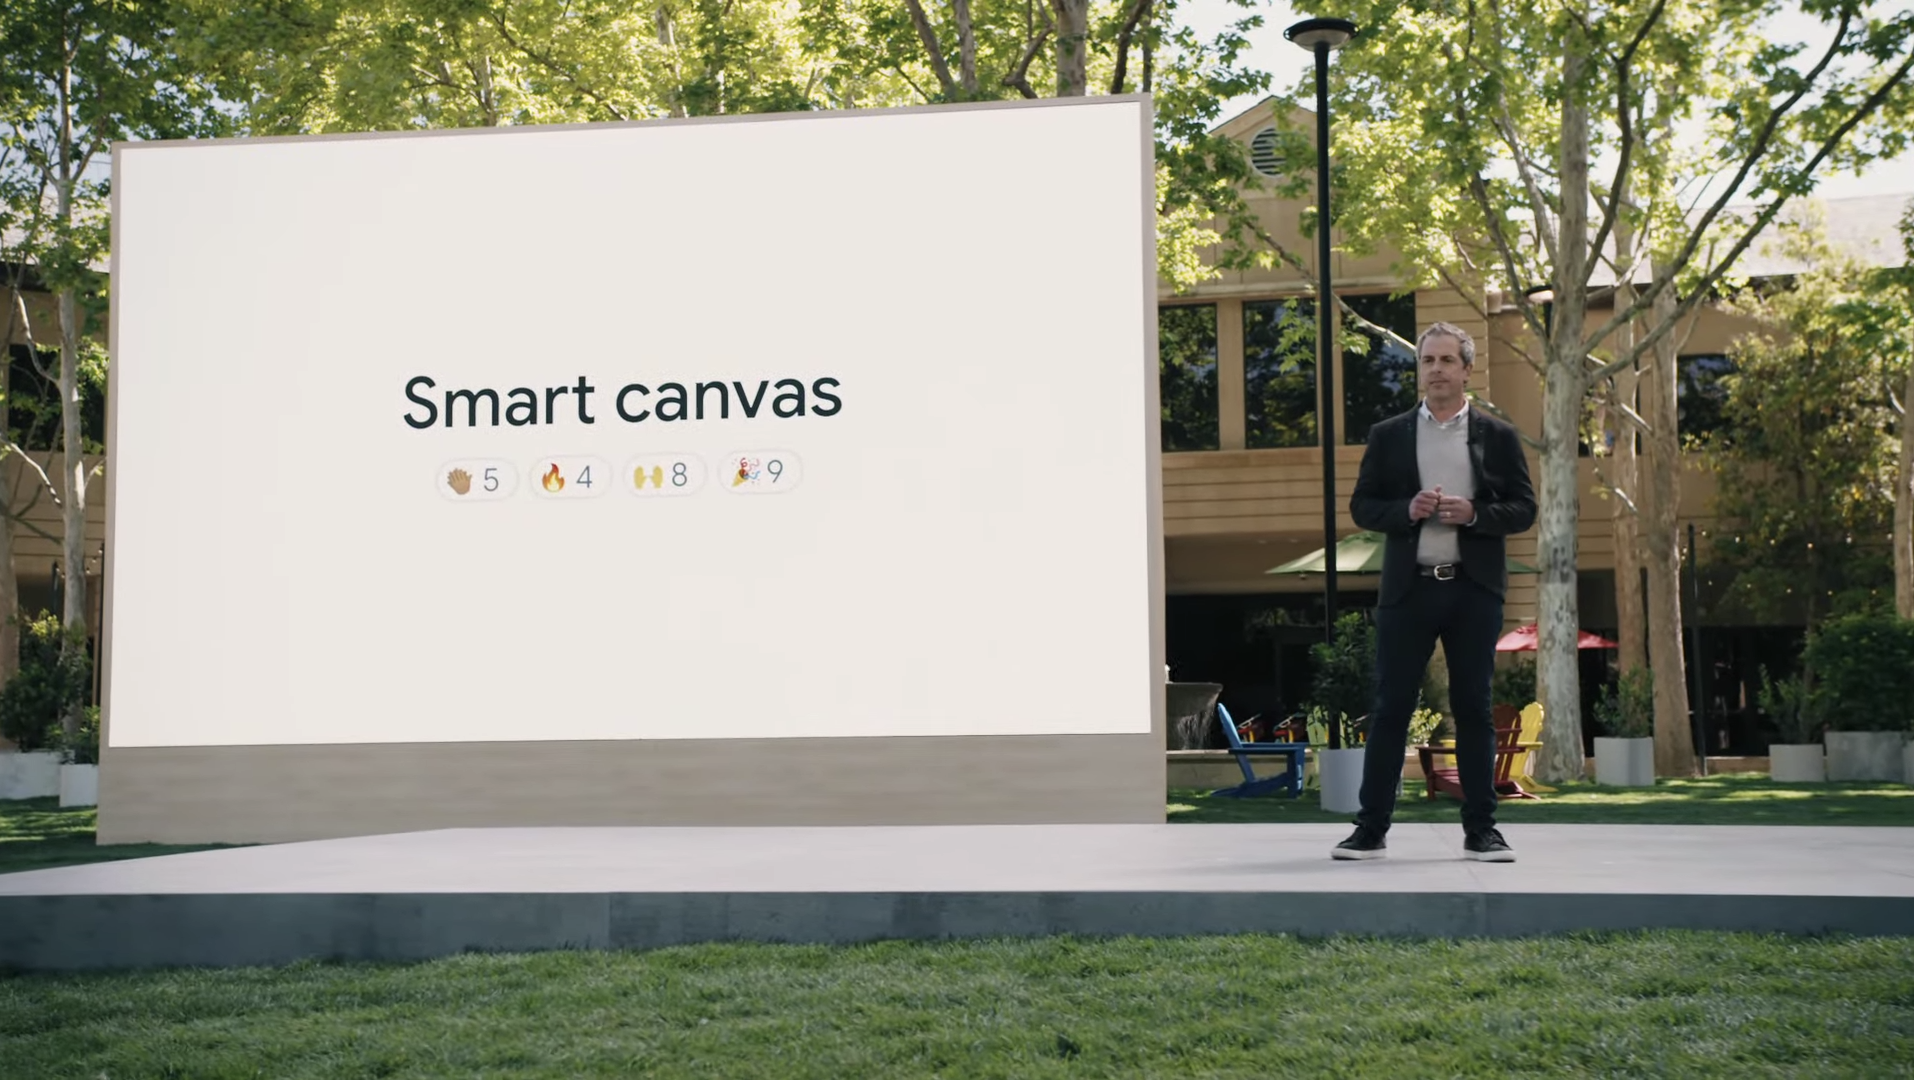 Smart canvas' will better integrate Google Workspace apps - 9to5Google